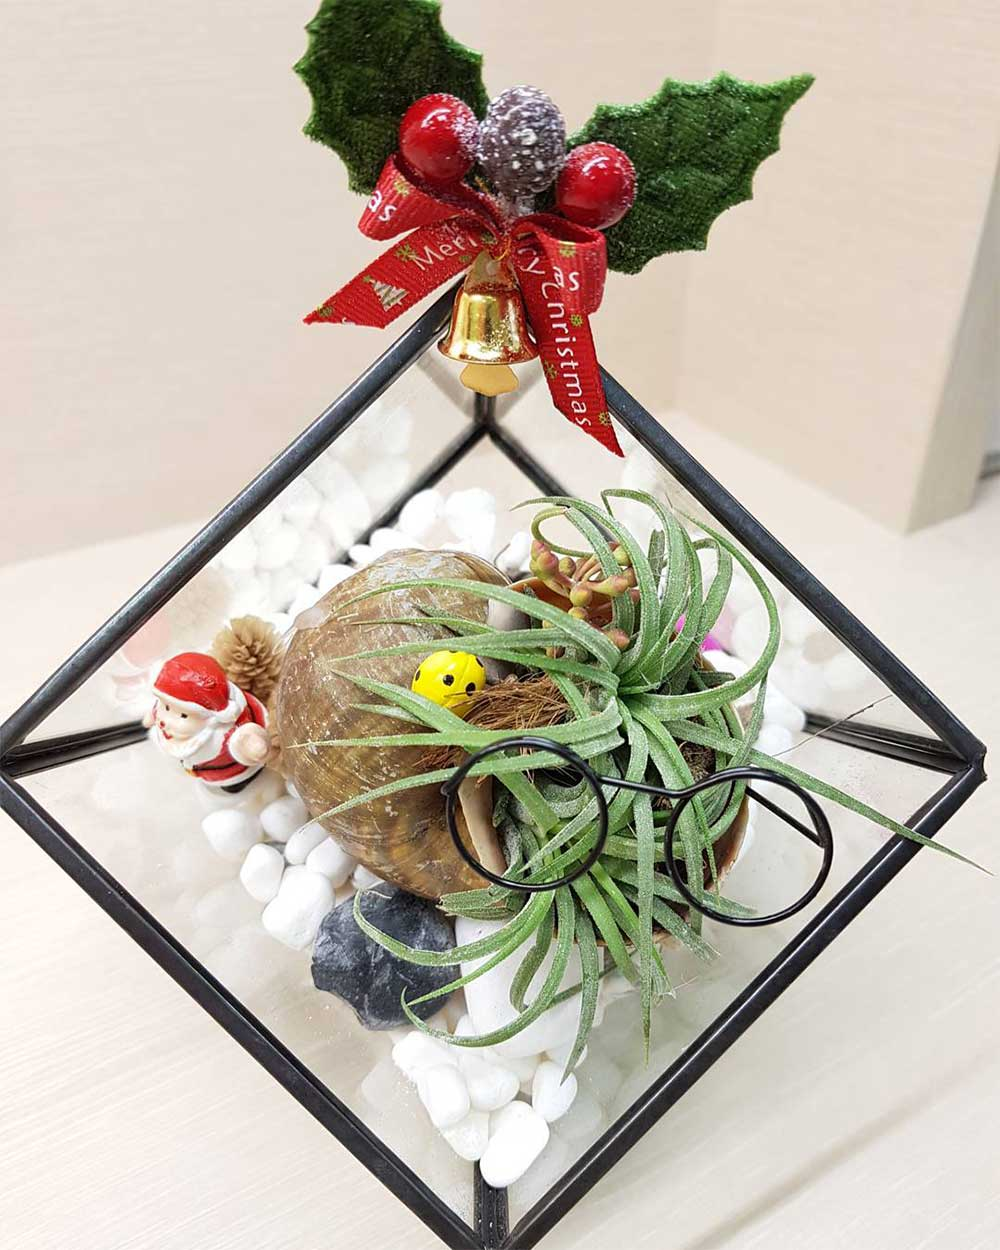 Miniature DIY terrarium decoration decorations 2019